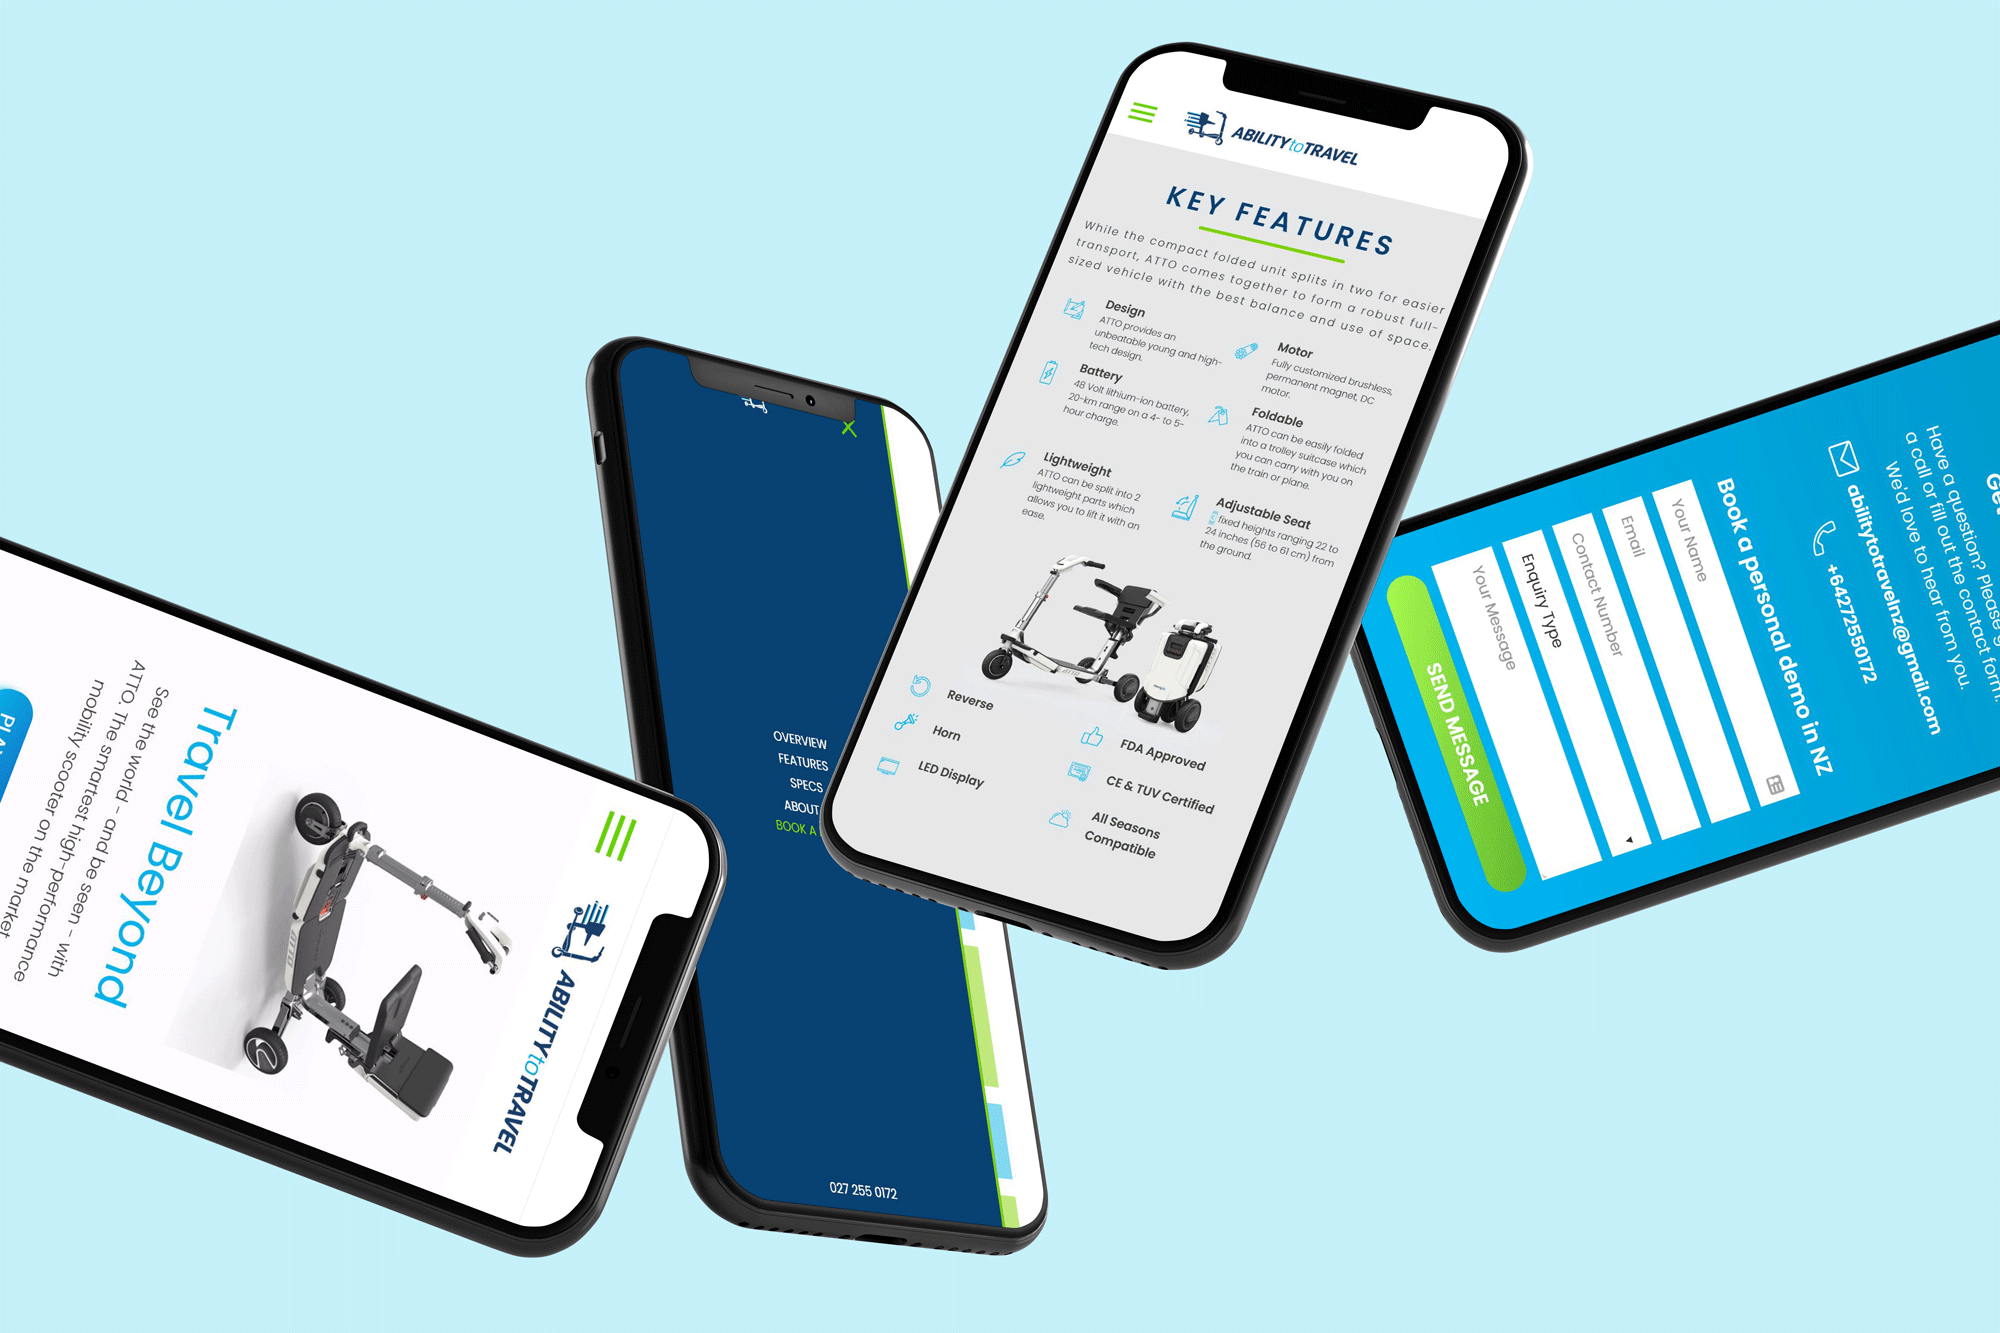 Ability to Travel - Mobile website design on 4 iPhones